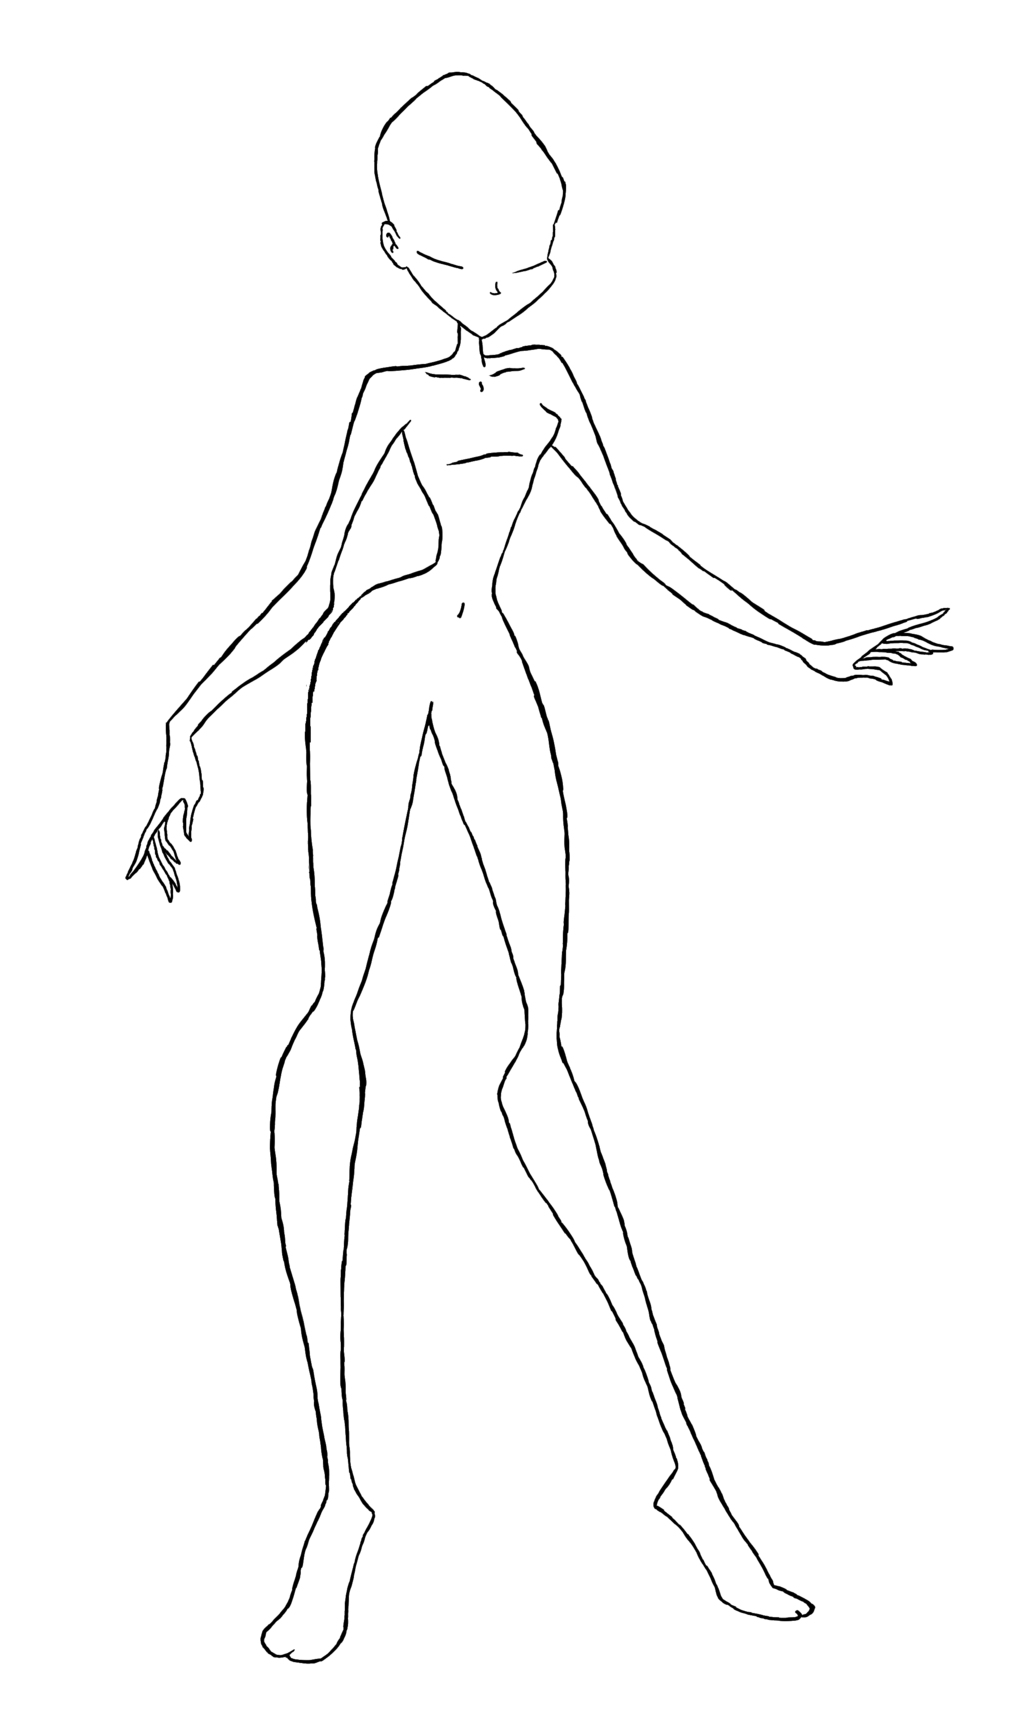 Female human body at. Club drawing blank clip art transparent download